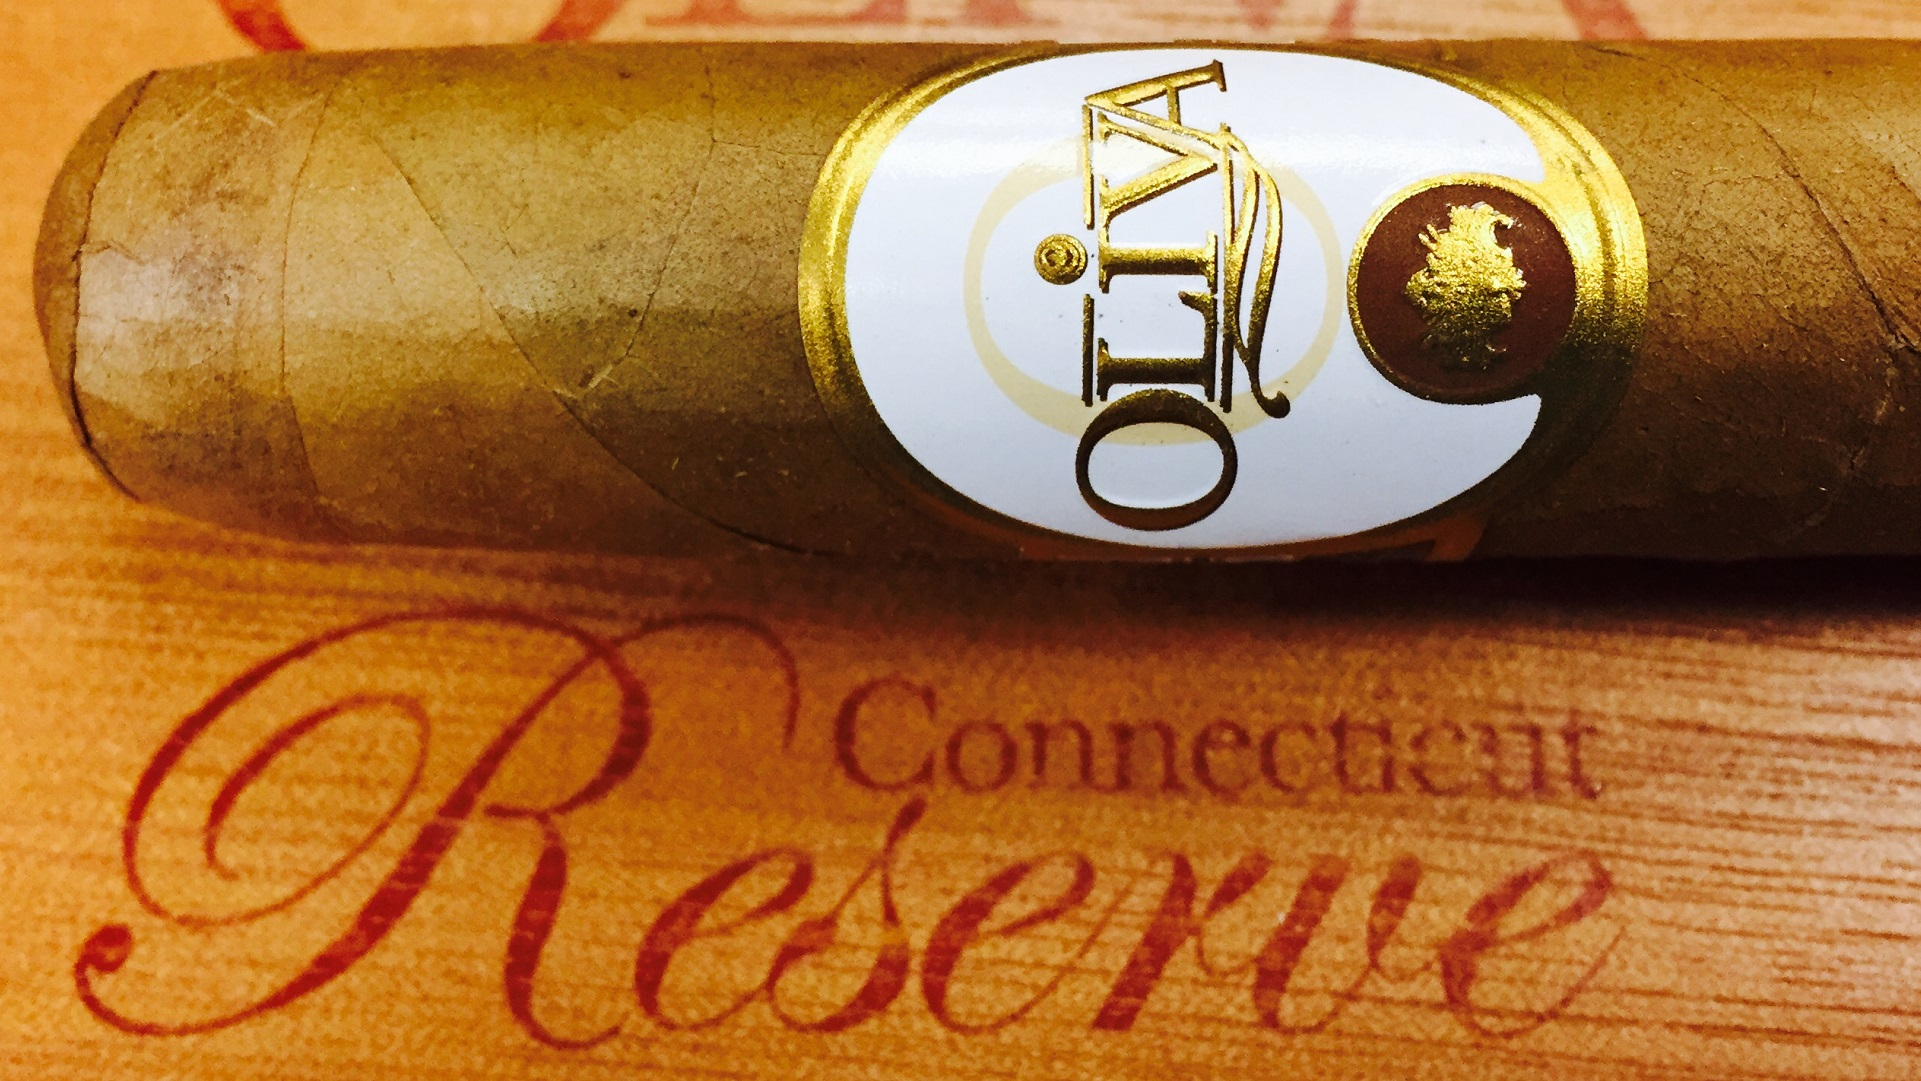 Oliva Connecticut Reserve Churchill - Box of 20 image